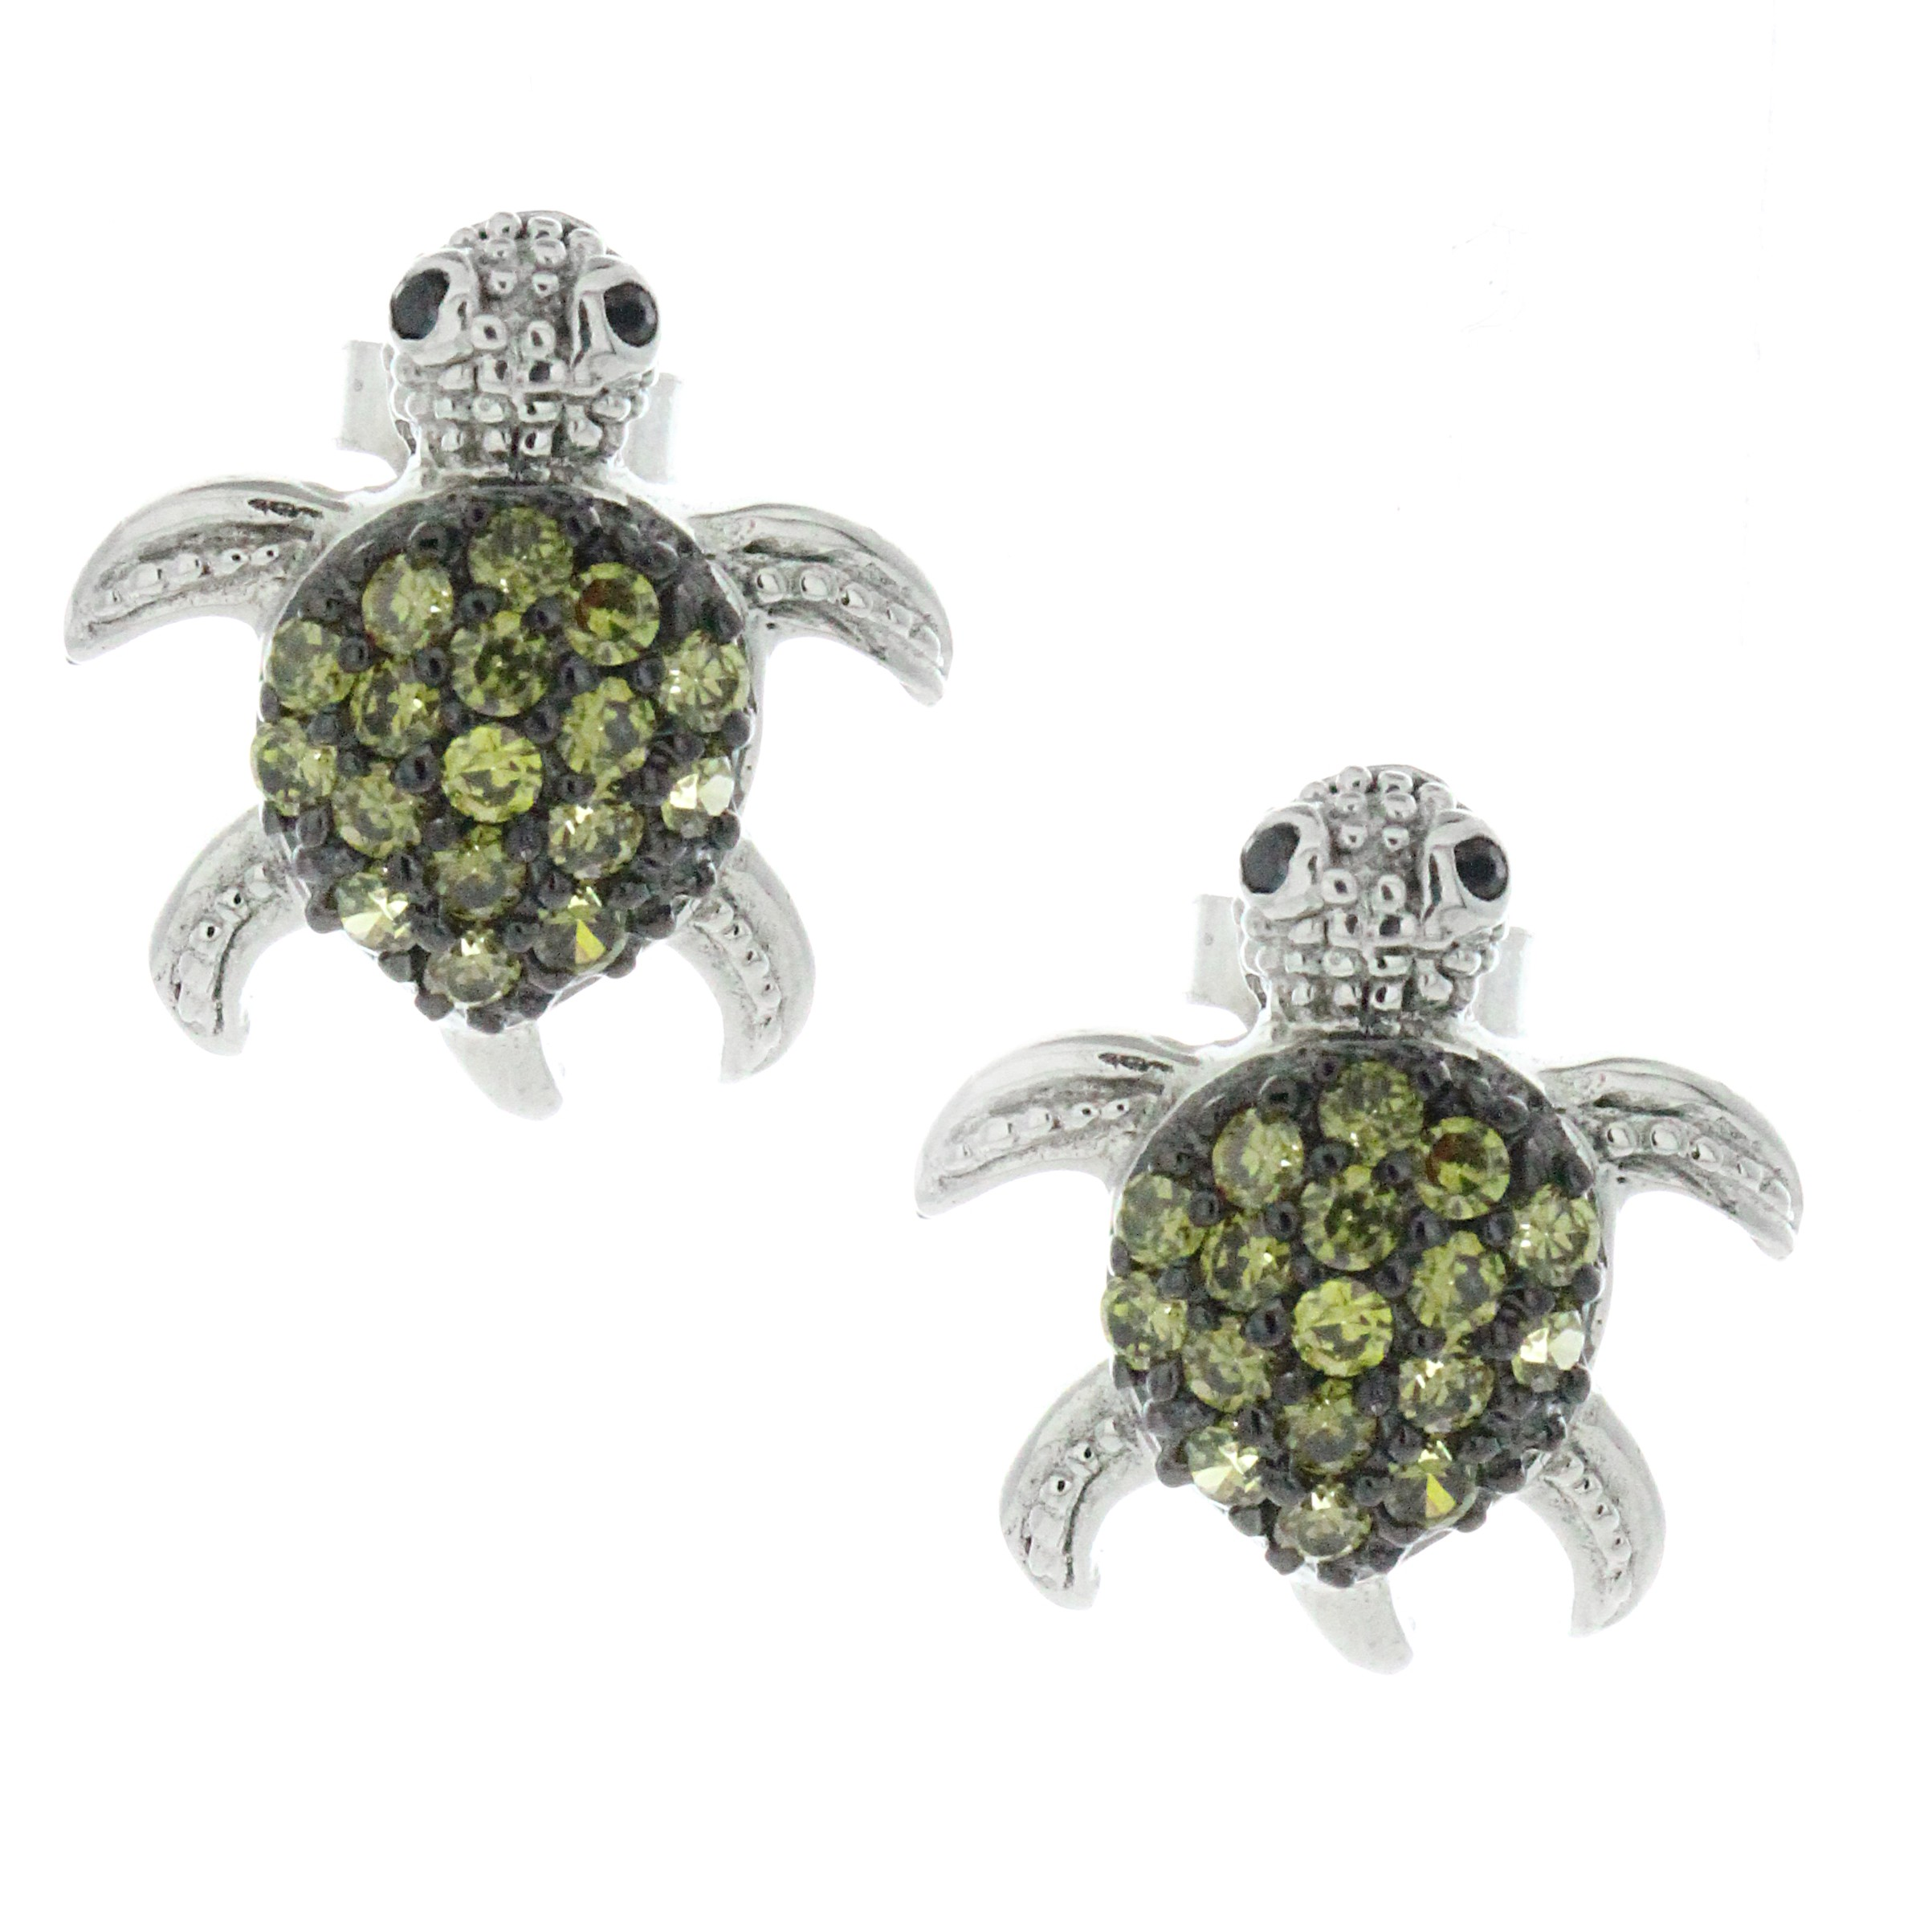 rings ring print turtle models jewelry model stl cgtrader